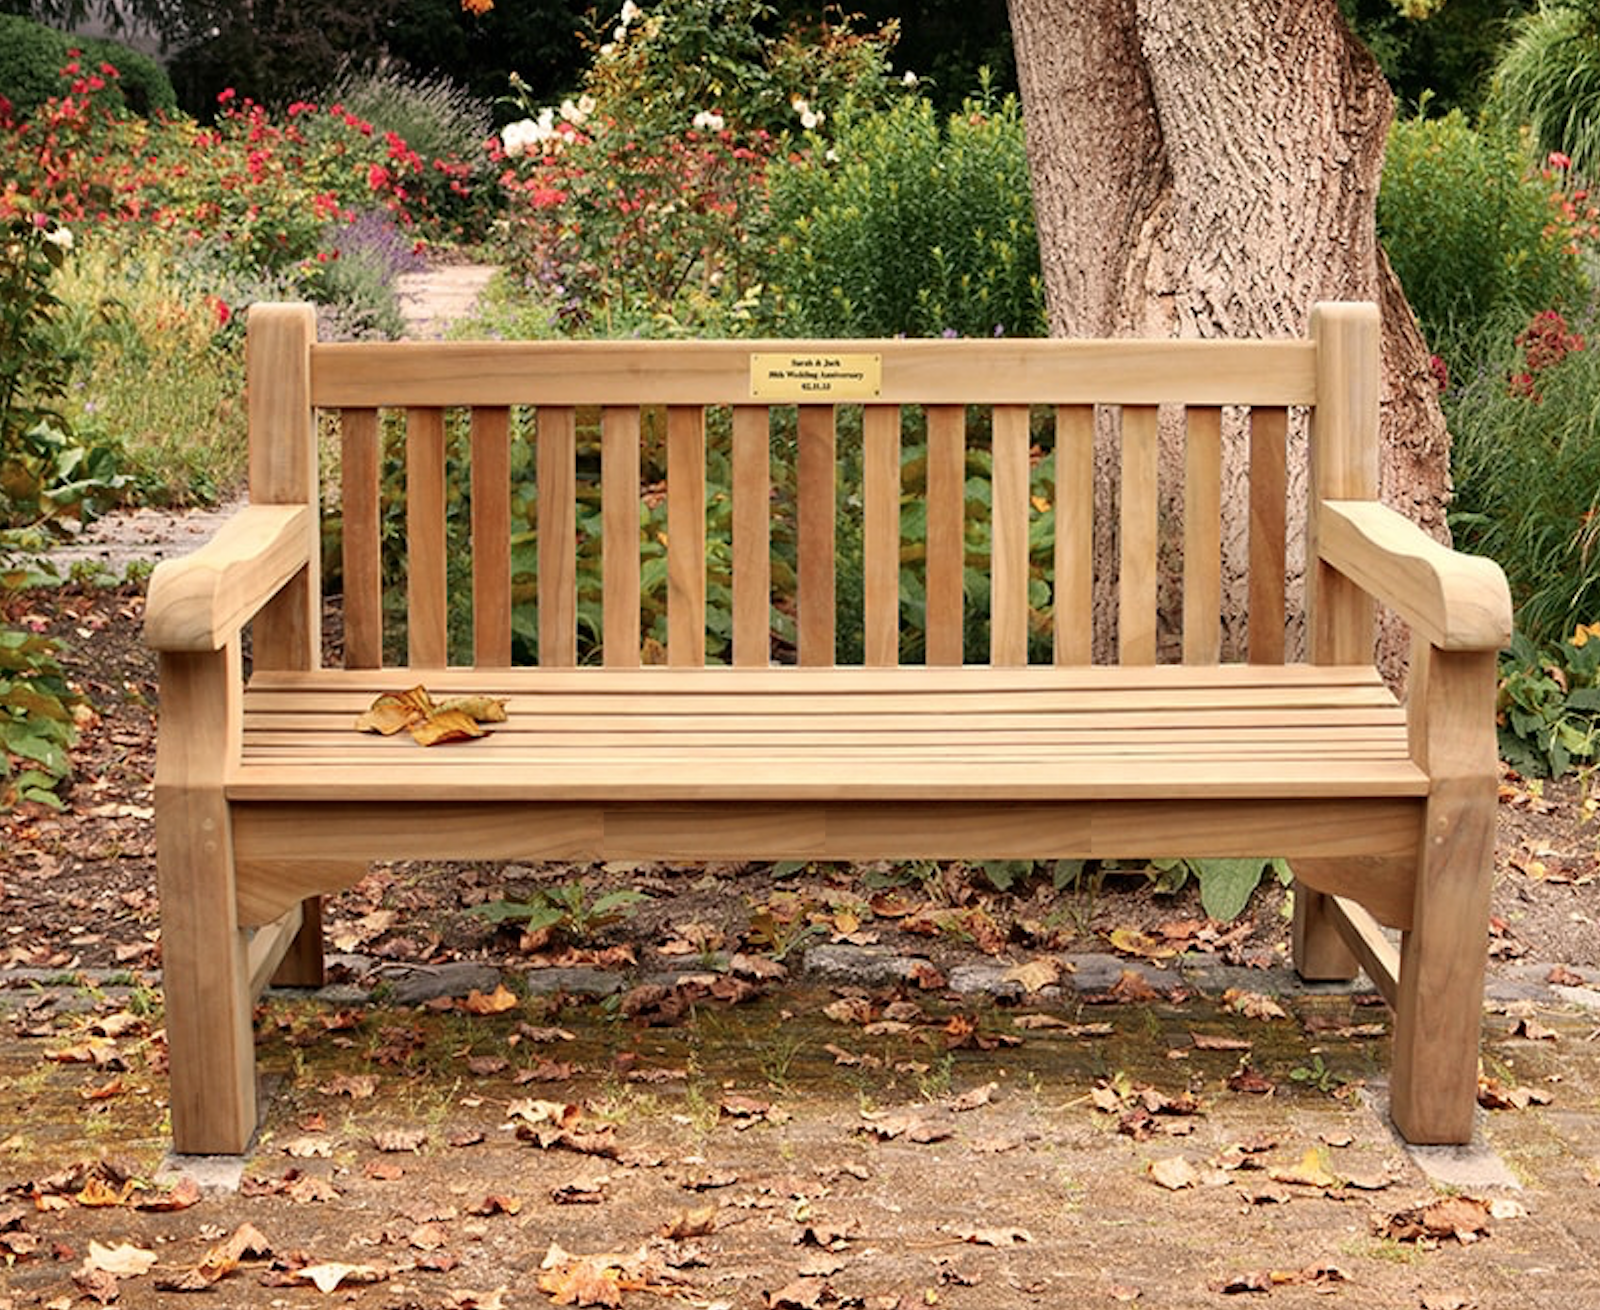 Sponsor a Bench at Cabin in the Woods | Volunteers of America